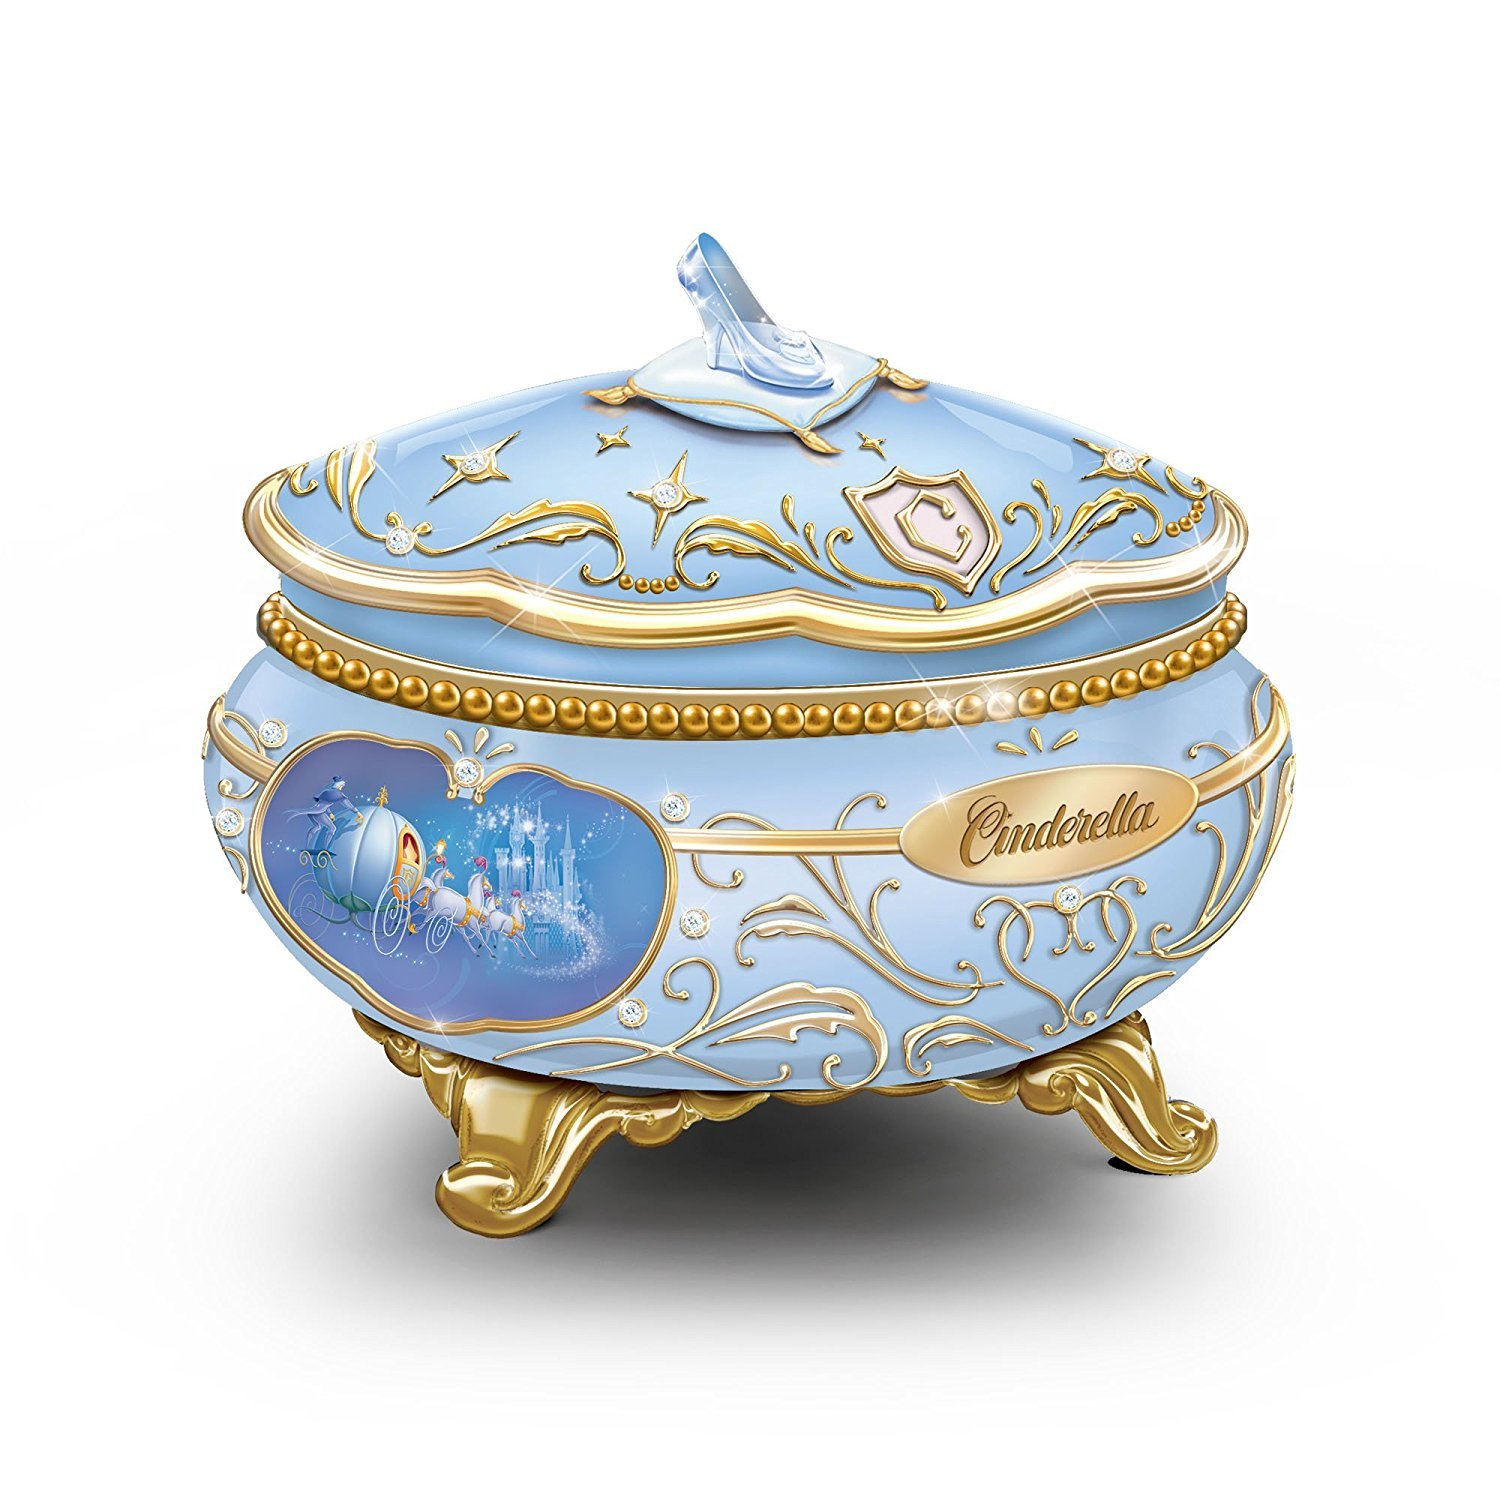 Disney Princess Cinderella Heirloom Porcelain Music Box with Dancing Characters by The Bradford Exchange by Bradford Exchange